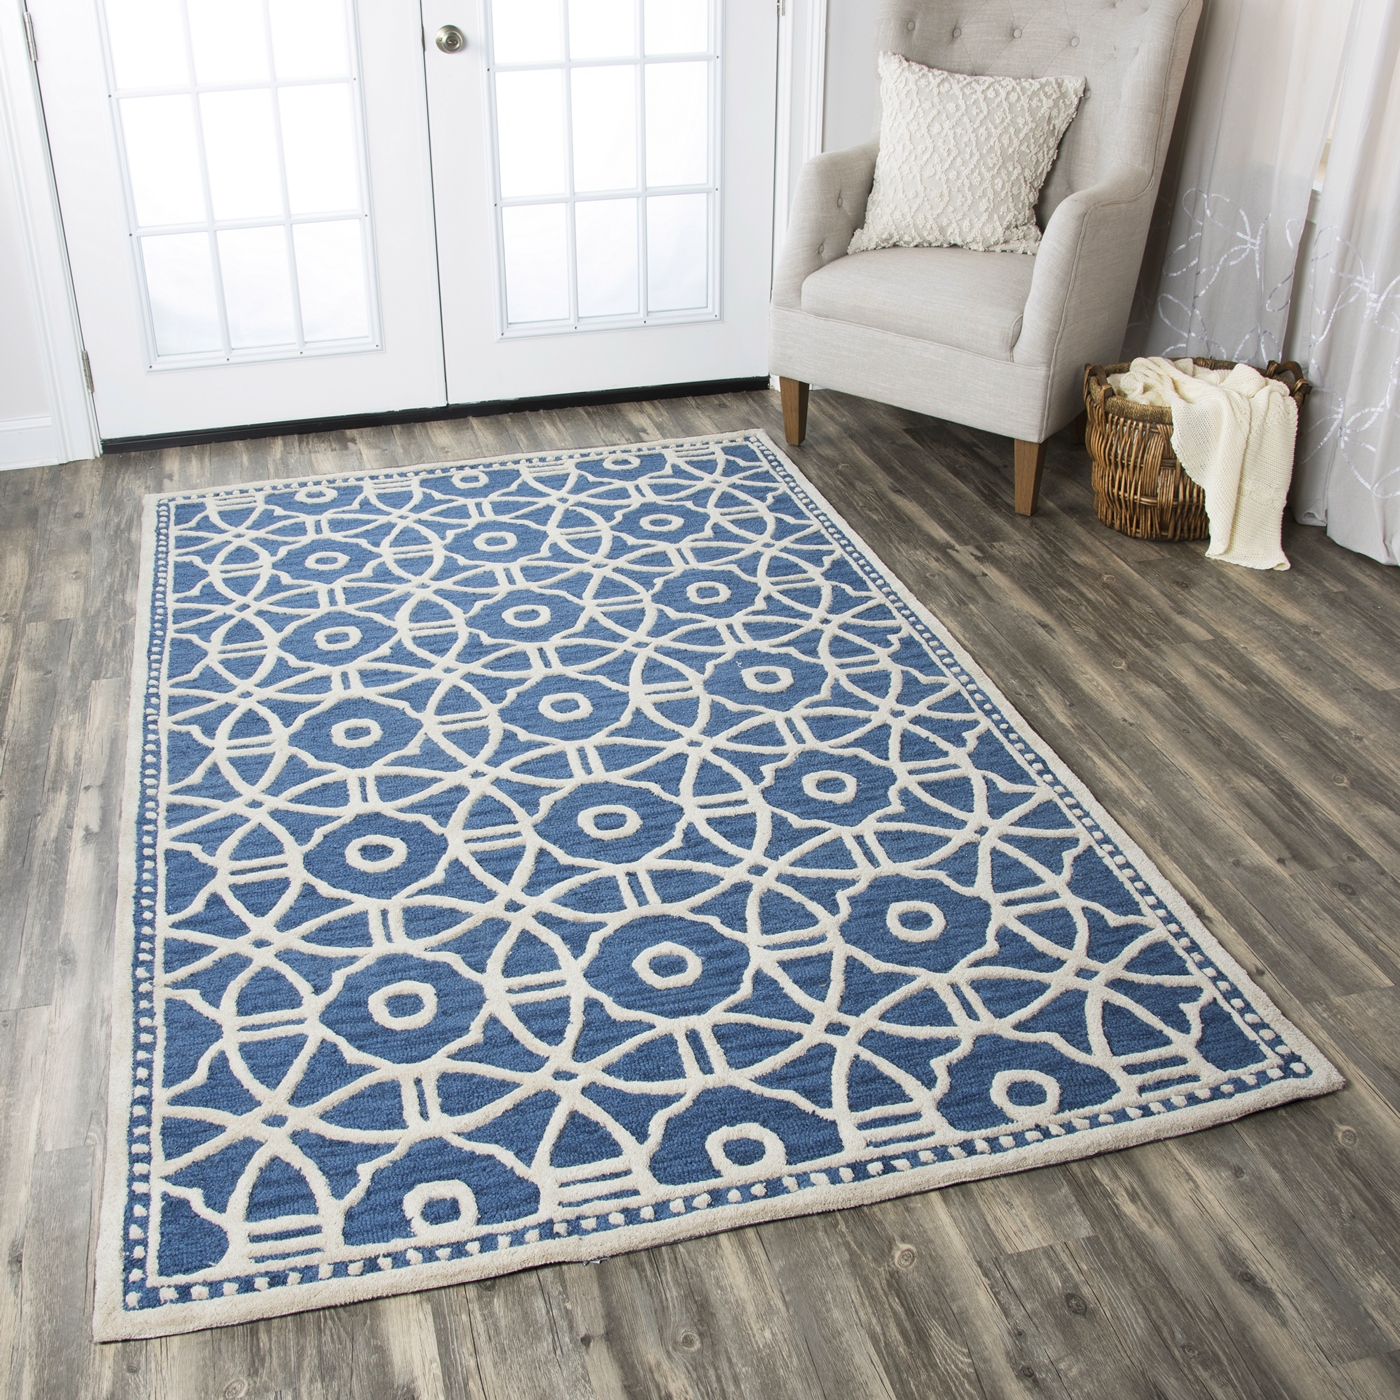 Luniccia Modern Circles Pattern Wool Area Rug In Blue